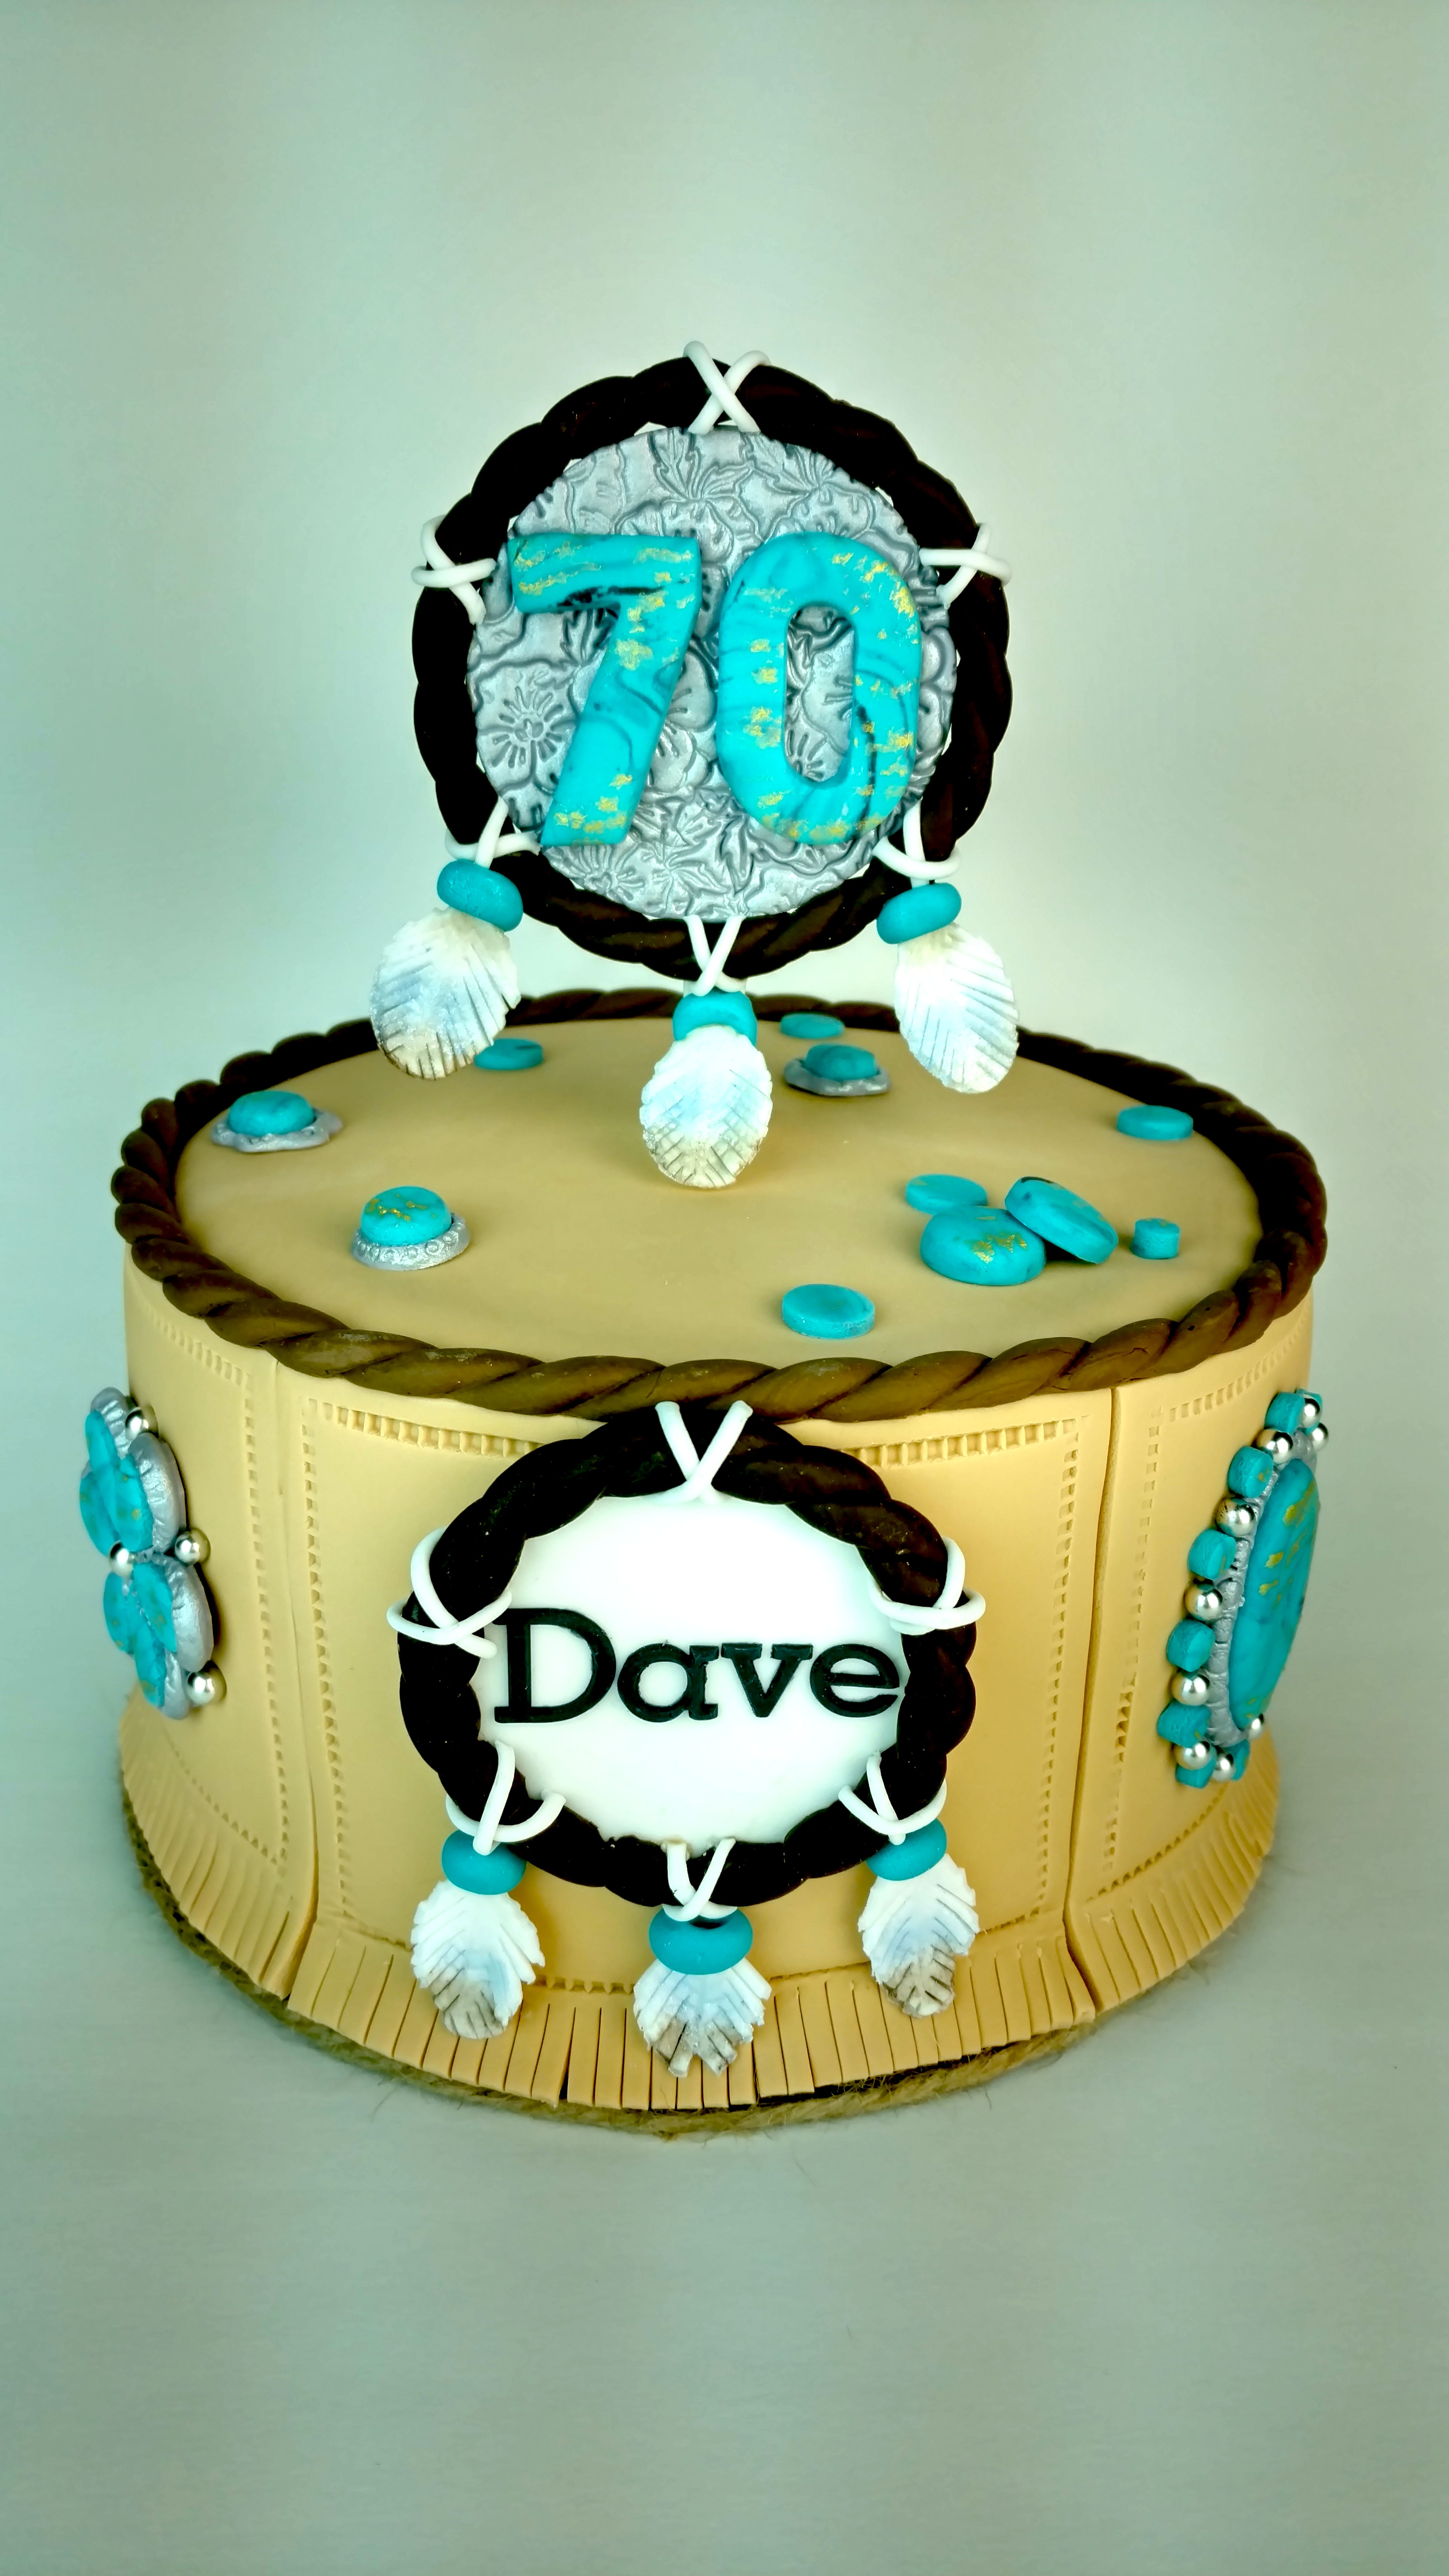 Dave's Navajo/Turquoise Themed Birthday